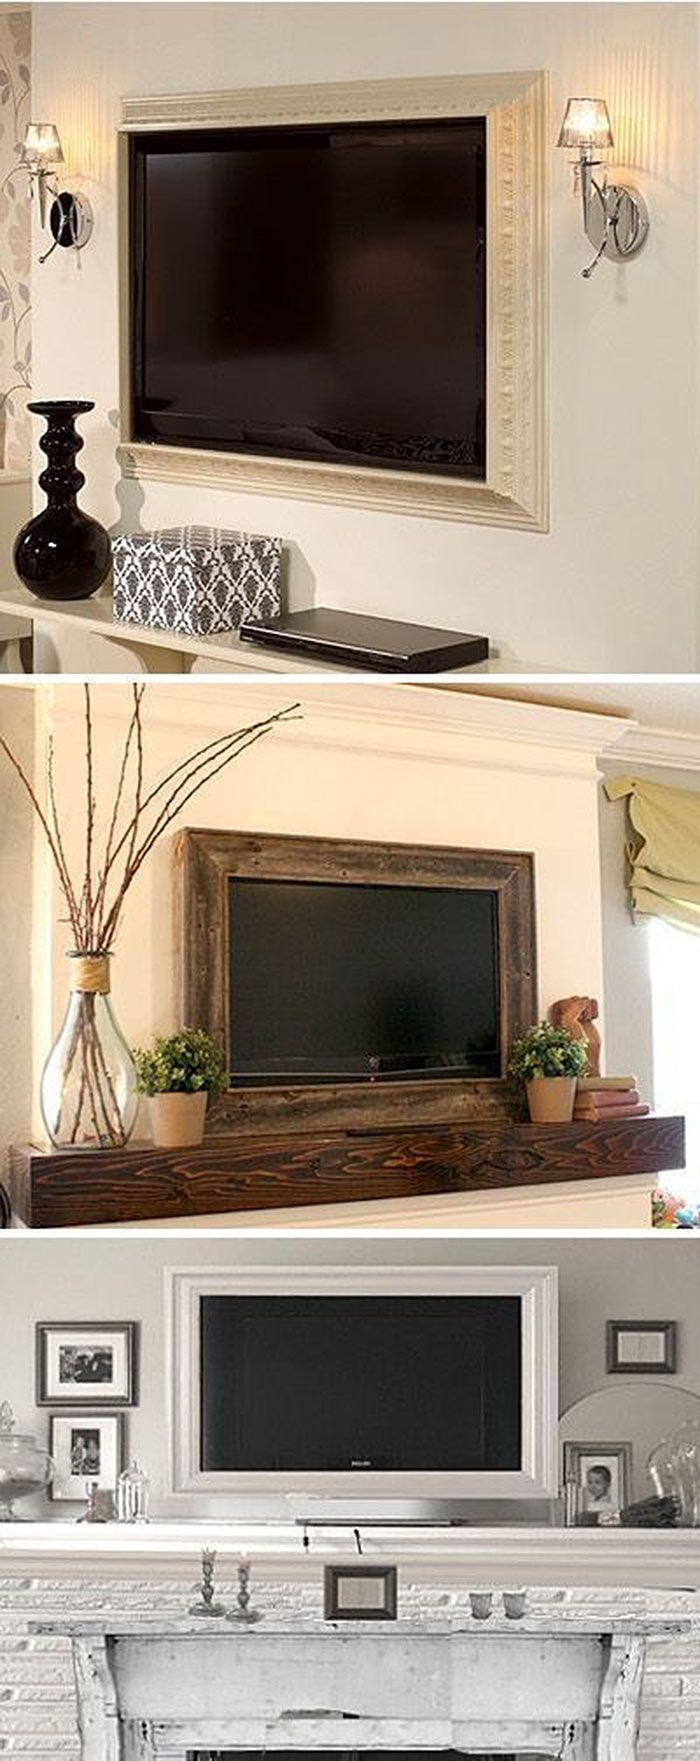 25 Best Ideas About Texas Home Decor On Pinterest College Apartment Decorations Art Colleges In California And Roommate Decor